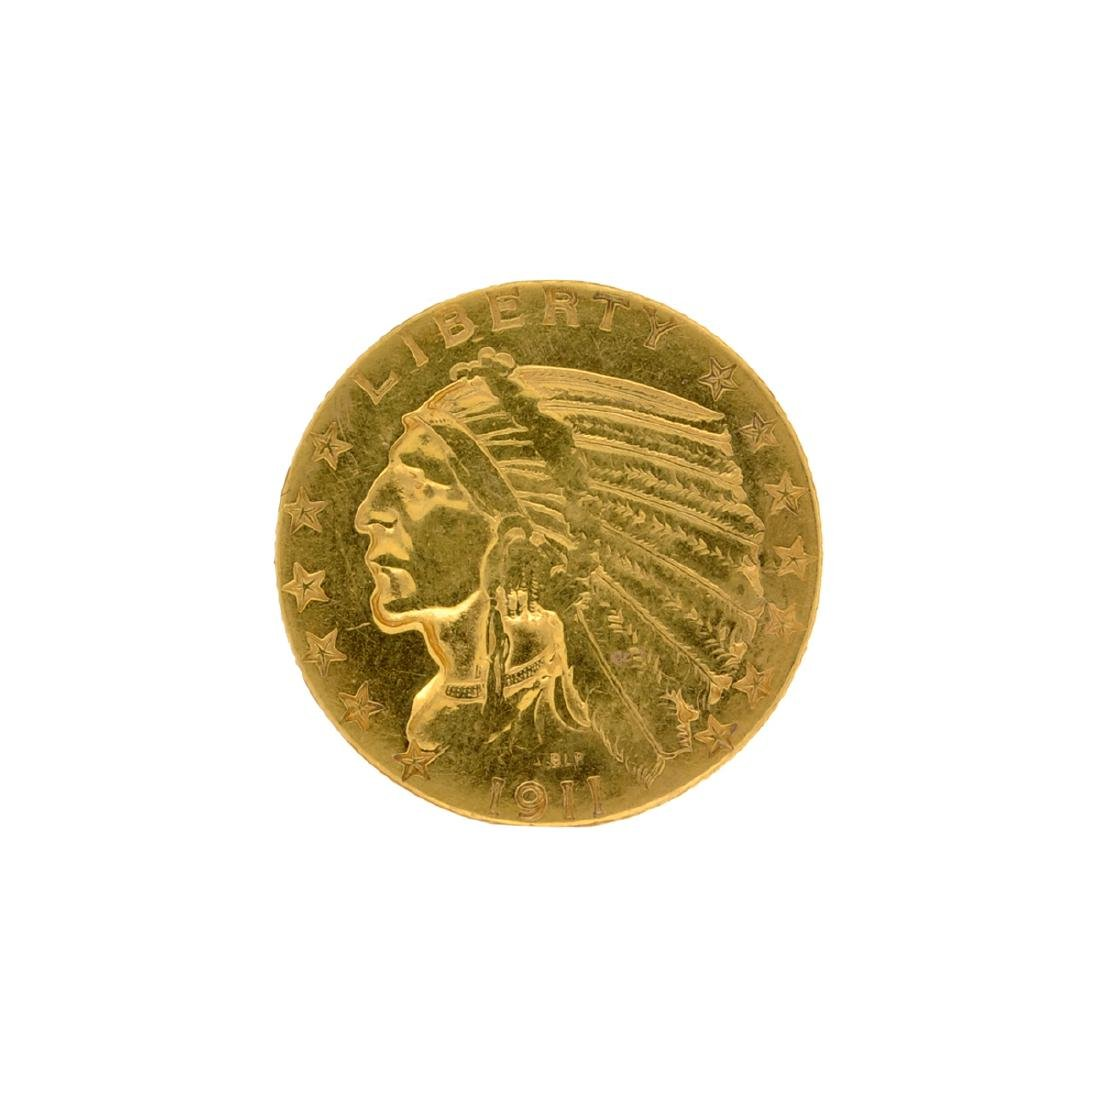 1911 $5 U.S. Indian Head Gold Coin